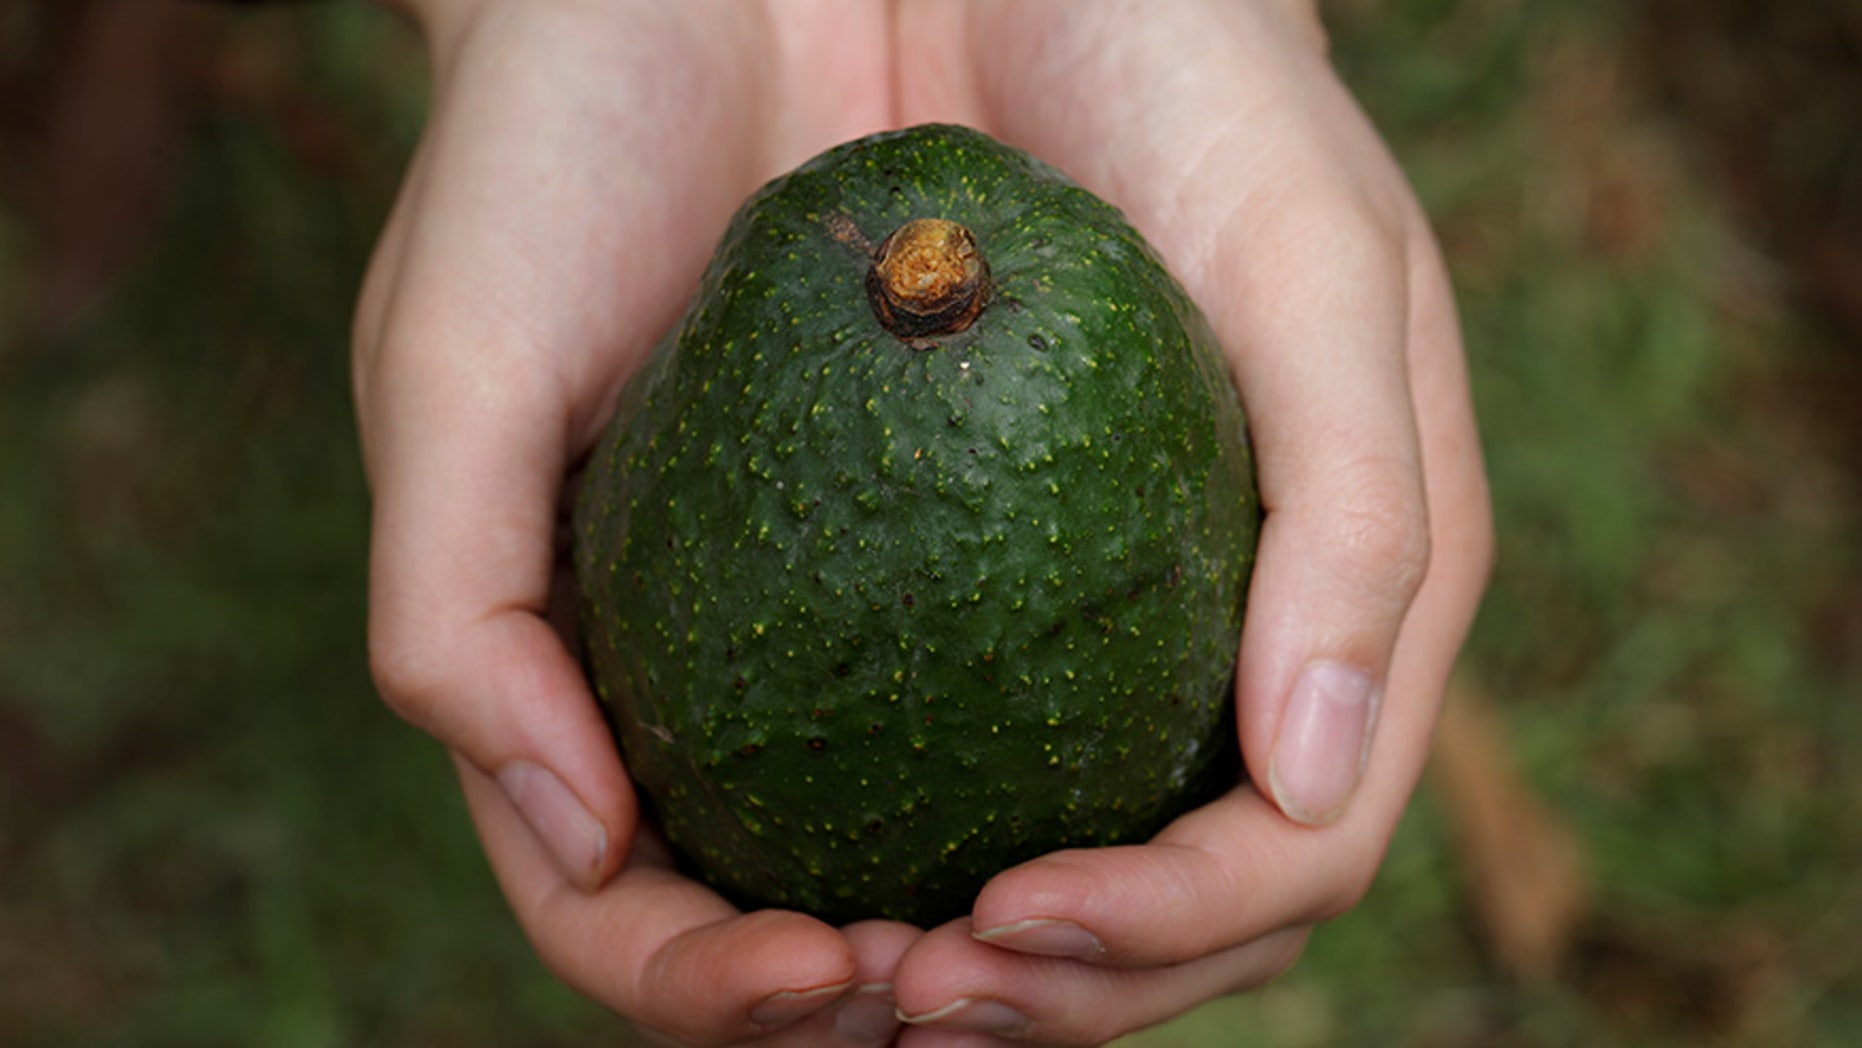 The Mexican attorney general's office said organized crime cells are using government records to identify and eventually extort avocado producers.